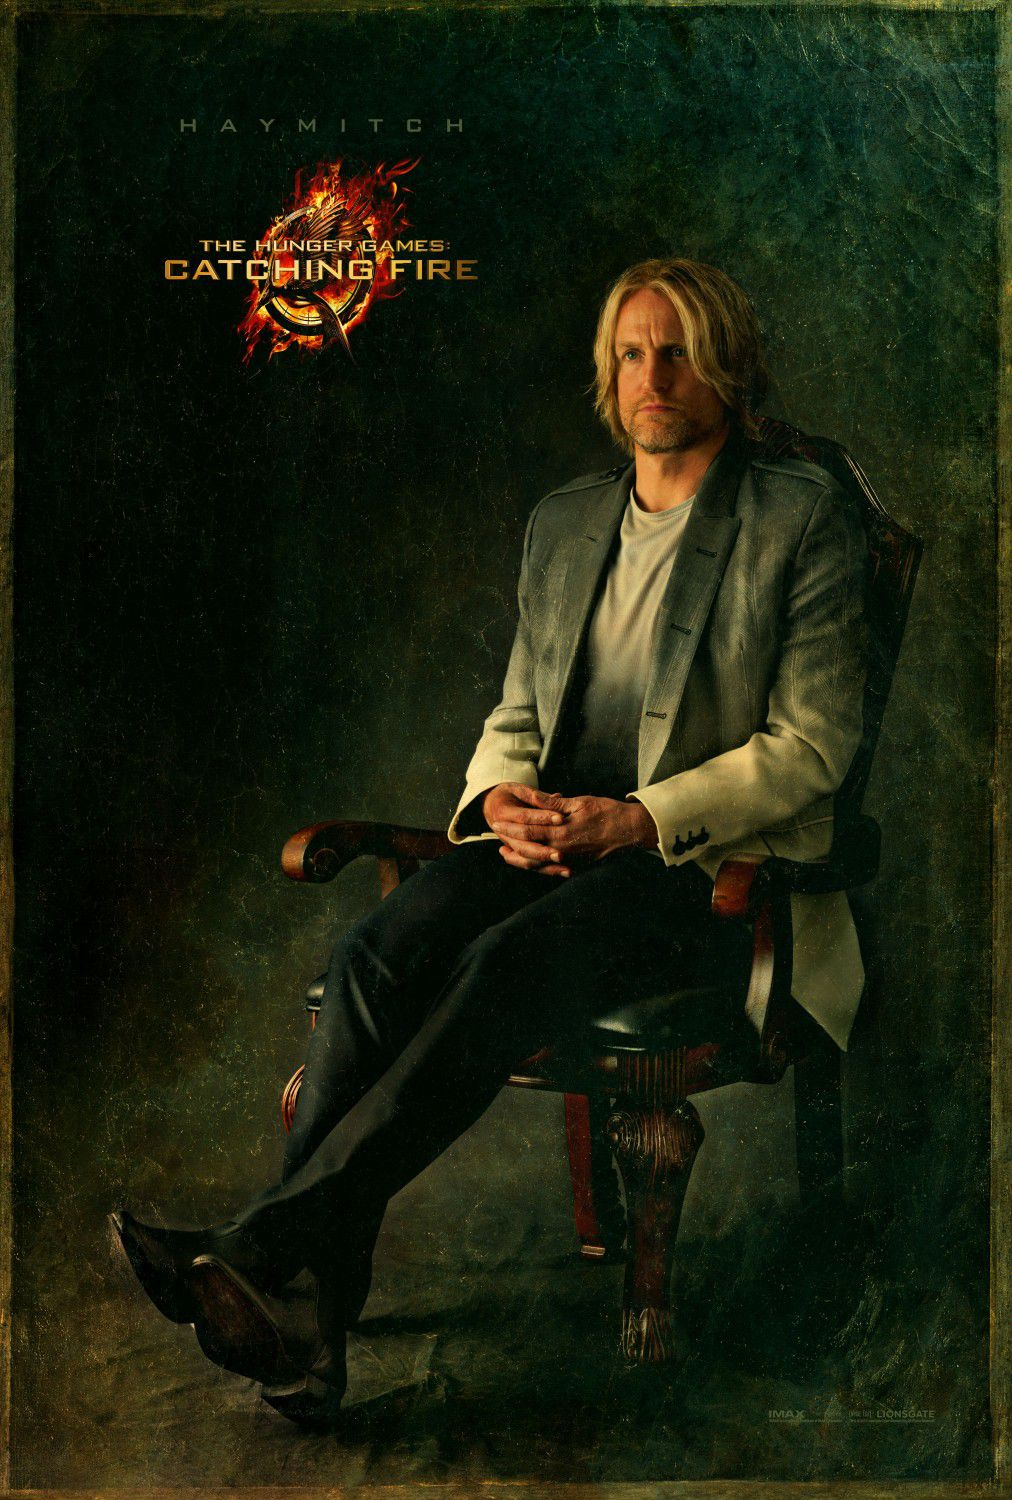 Woody Harrelson is Haymitch Abernathy